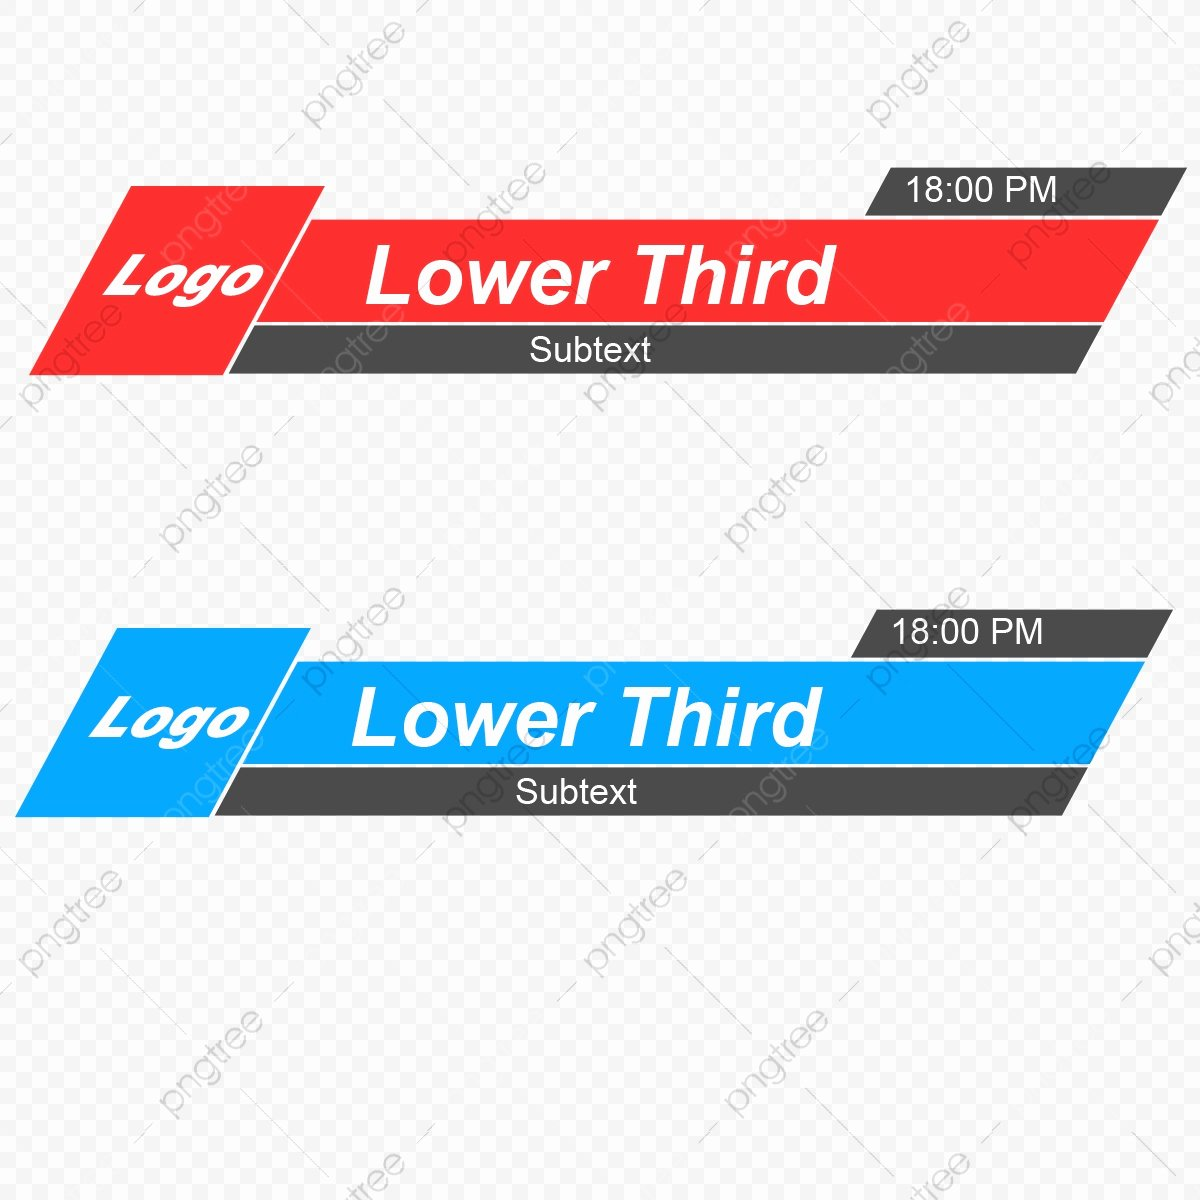 Lower Third Templates Photoshop Best Of Lower Third Vector Banner Free Lower Third Graphics Png Transparent Clipart Image and Psd